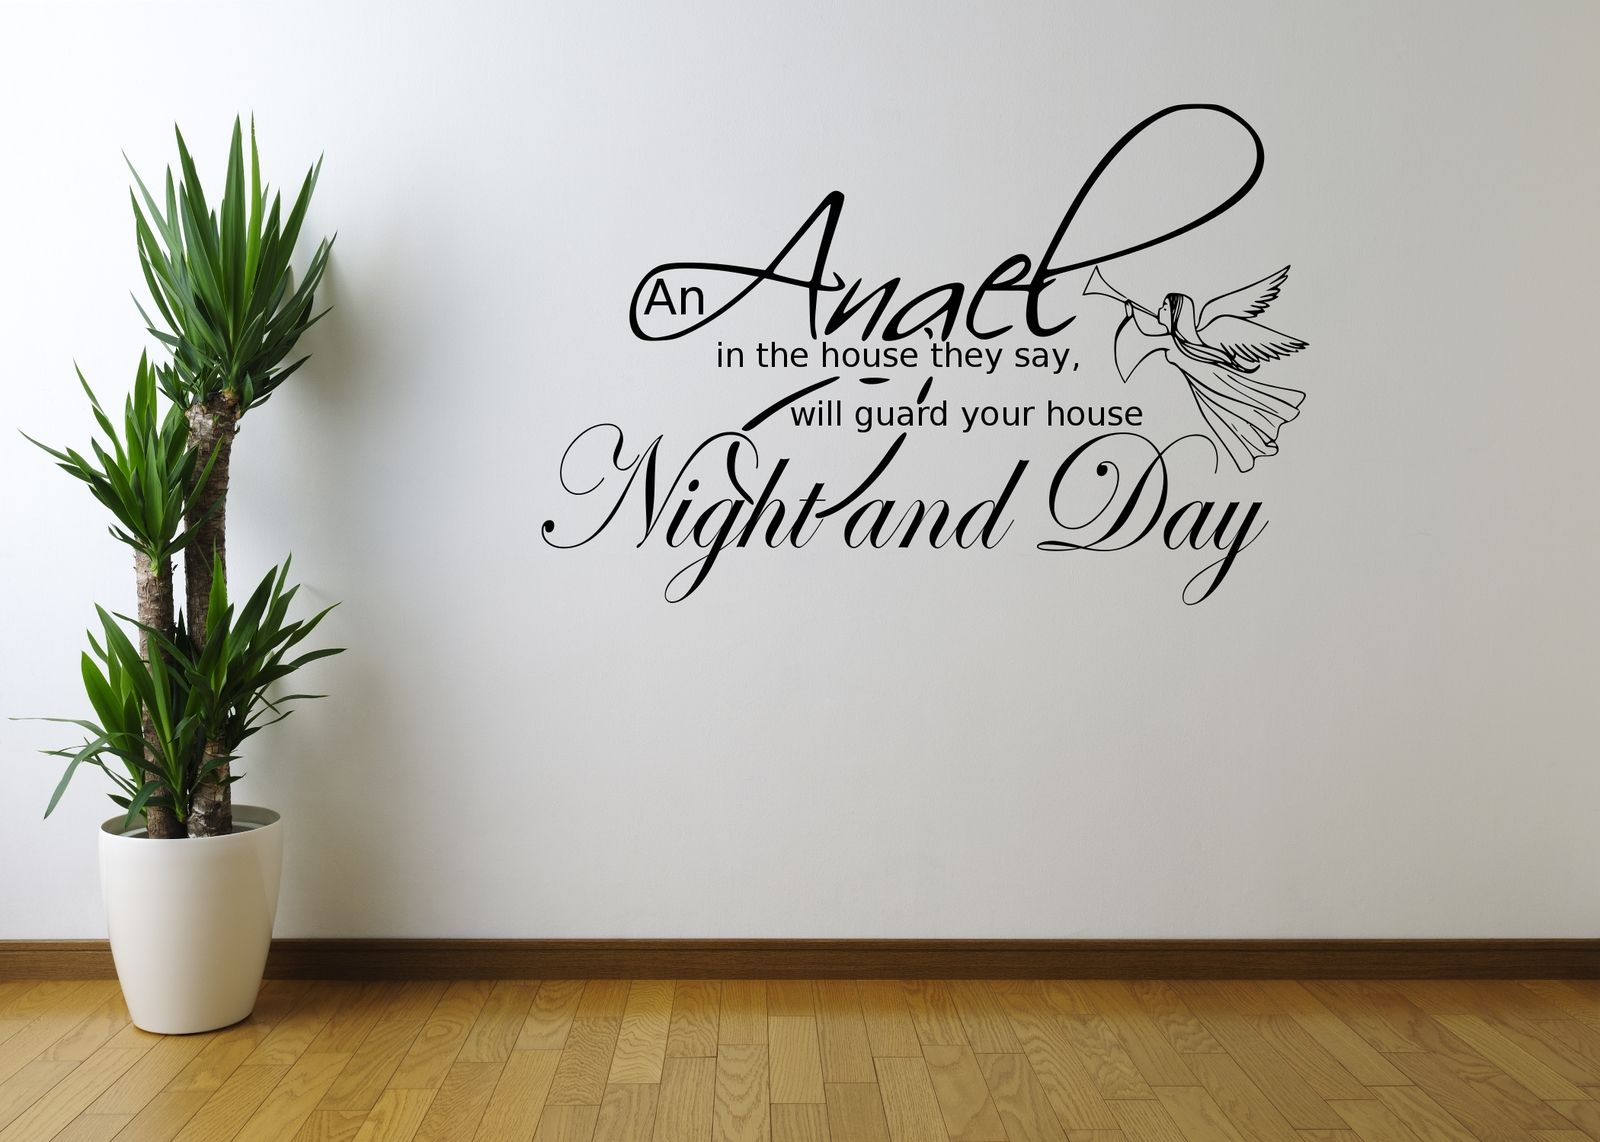 Angel night home quote wall art wall sticker decal mural for Angel wall decoration